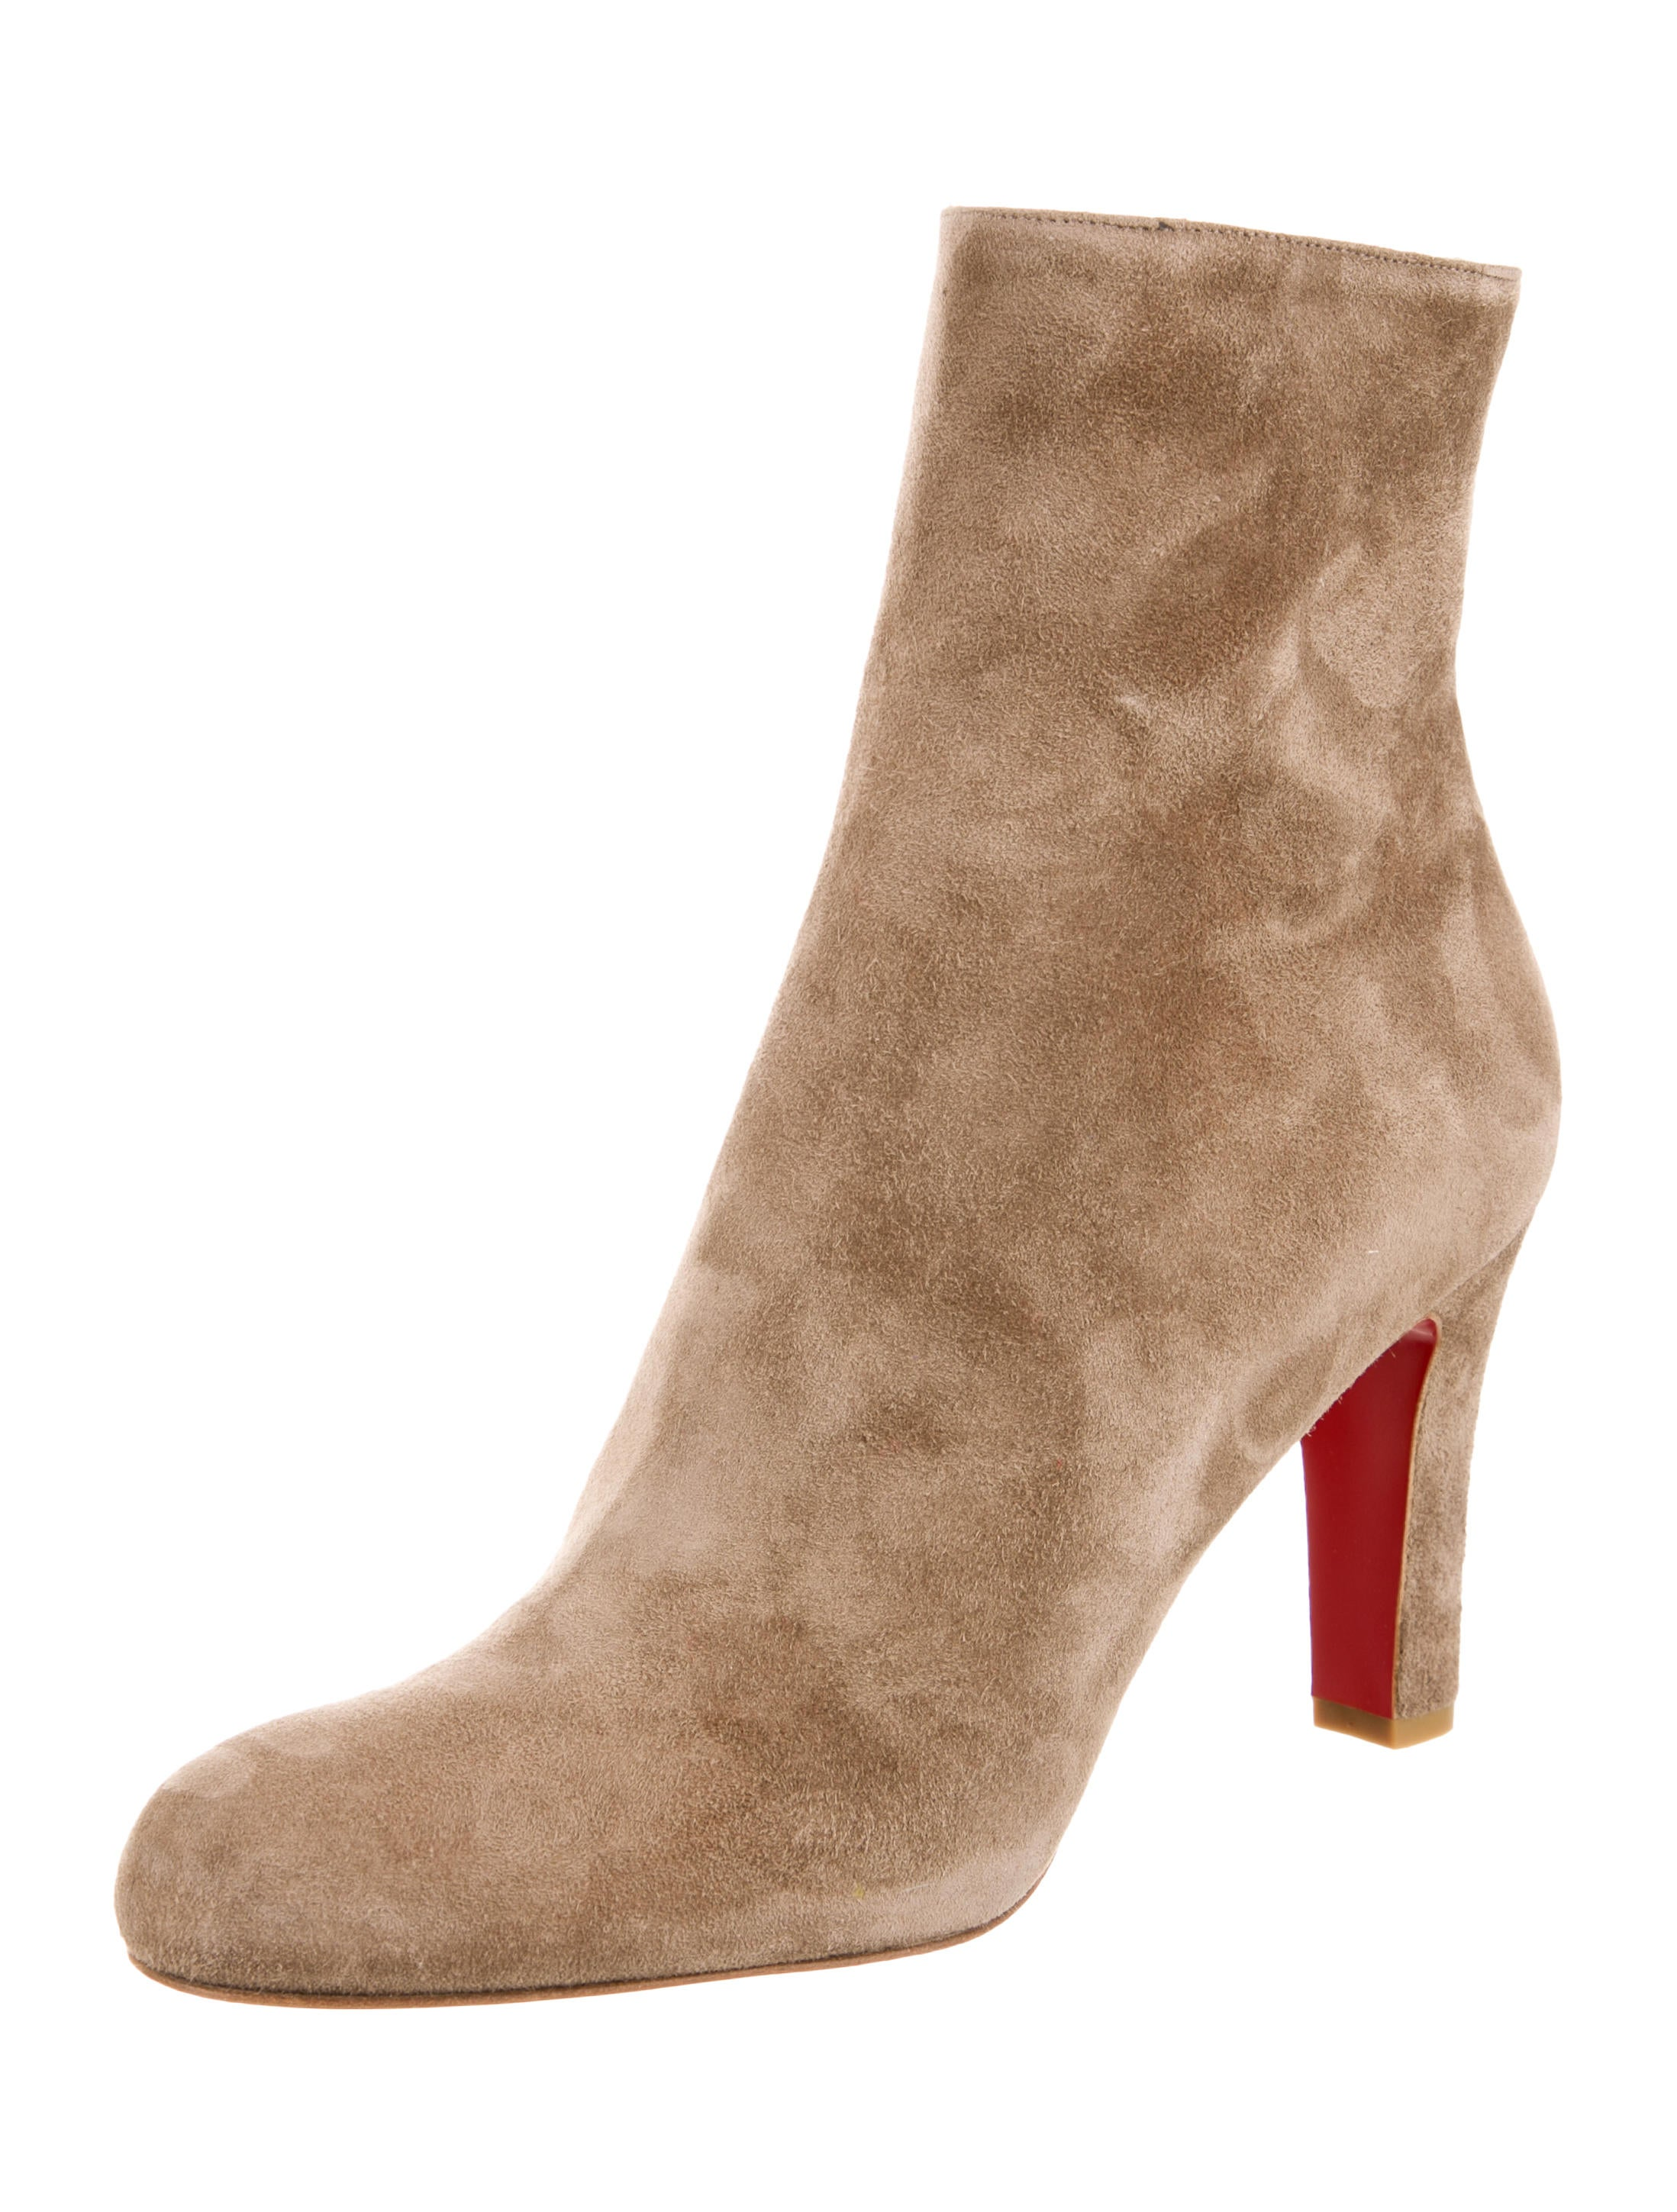 christian louboutin shoes replica - christian louboutin miss tack 85 booties w tags, knockoff ...